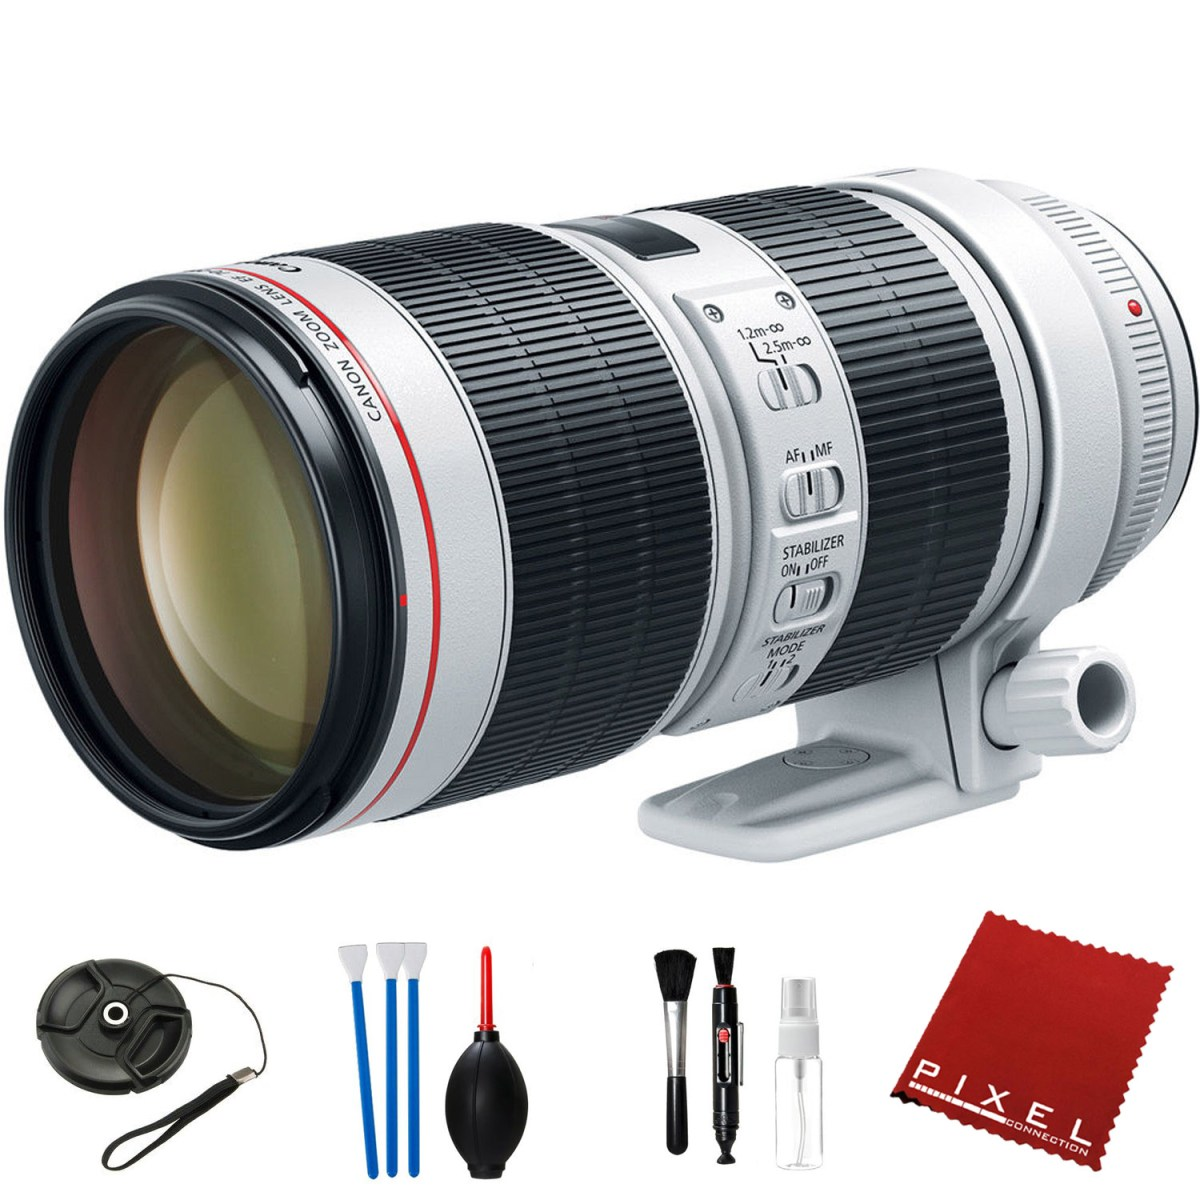 Canon EF 70-200mm f/2.8L IS III USM Lens with Pro Cleaning Kit